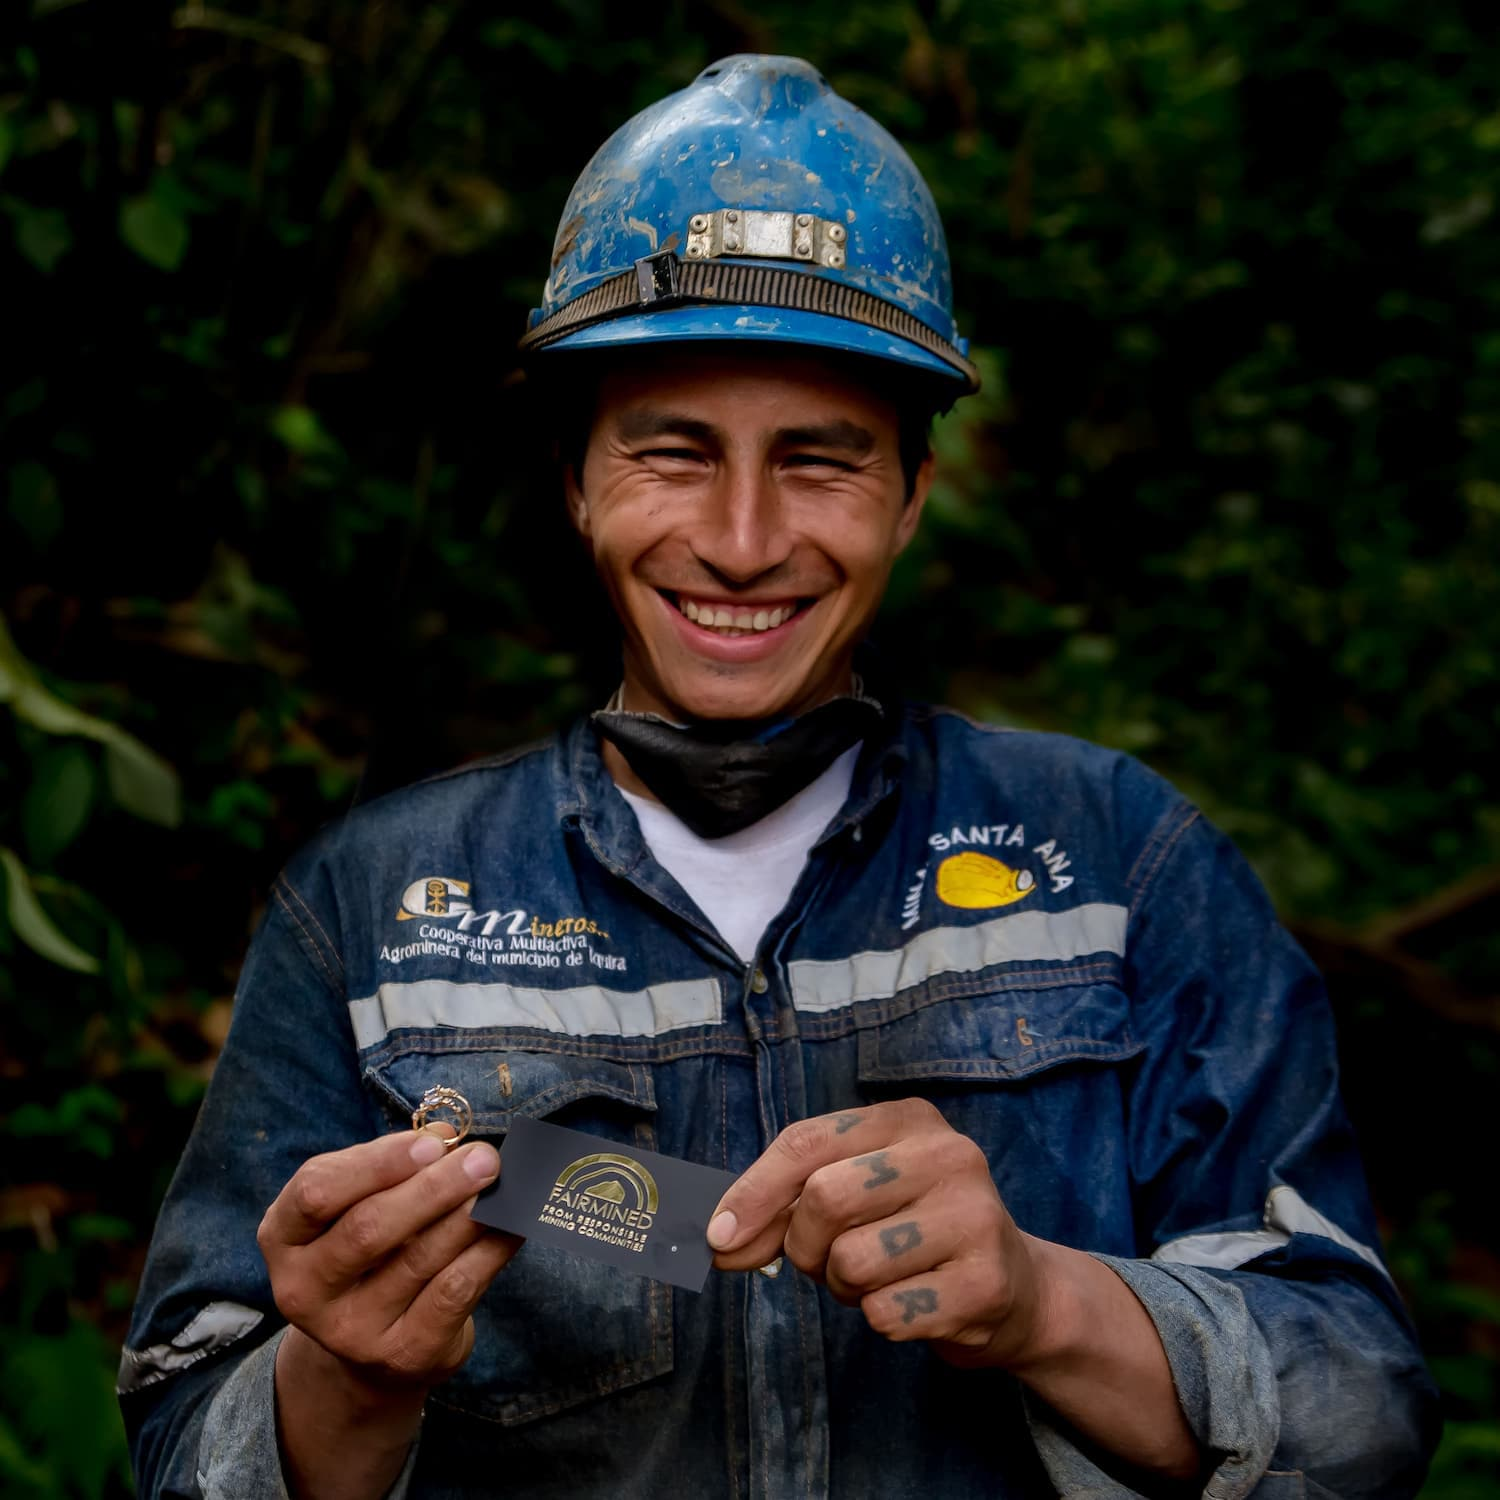 Fairmined Gold Miner wearing blue hard hat and overall and smiling holding fairmined gold rings